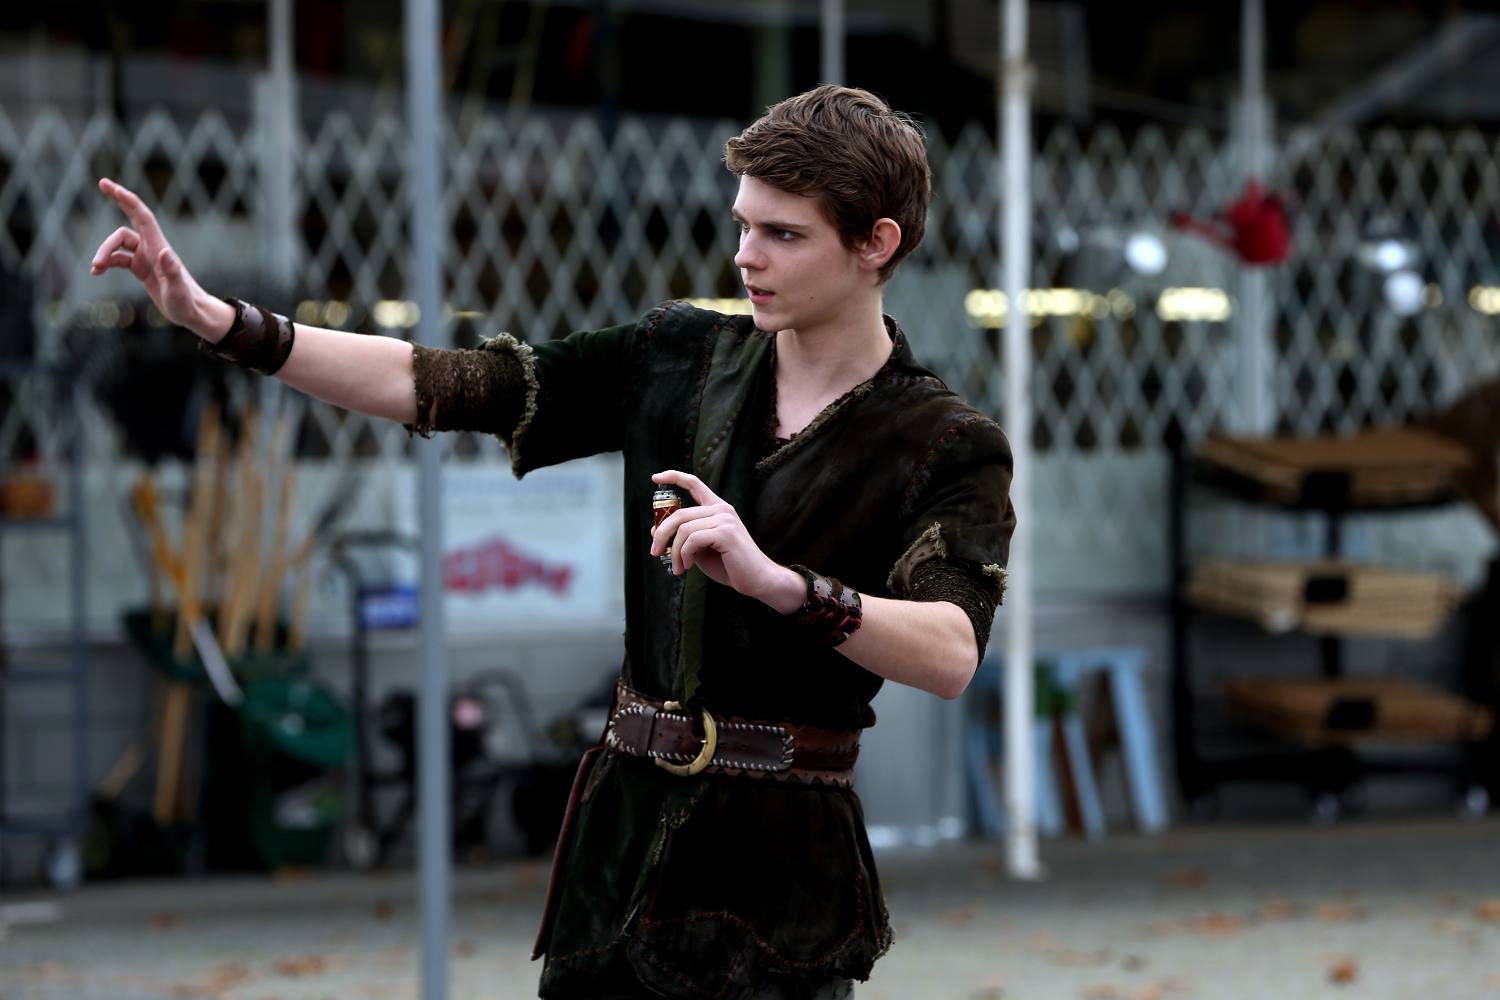 Who Plays Peter Pan In Once Upon A Time